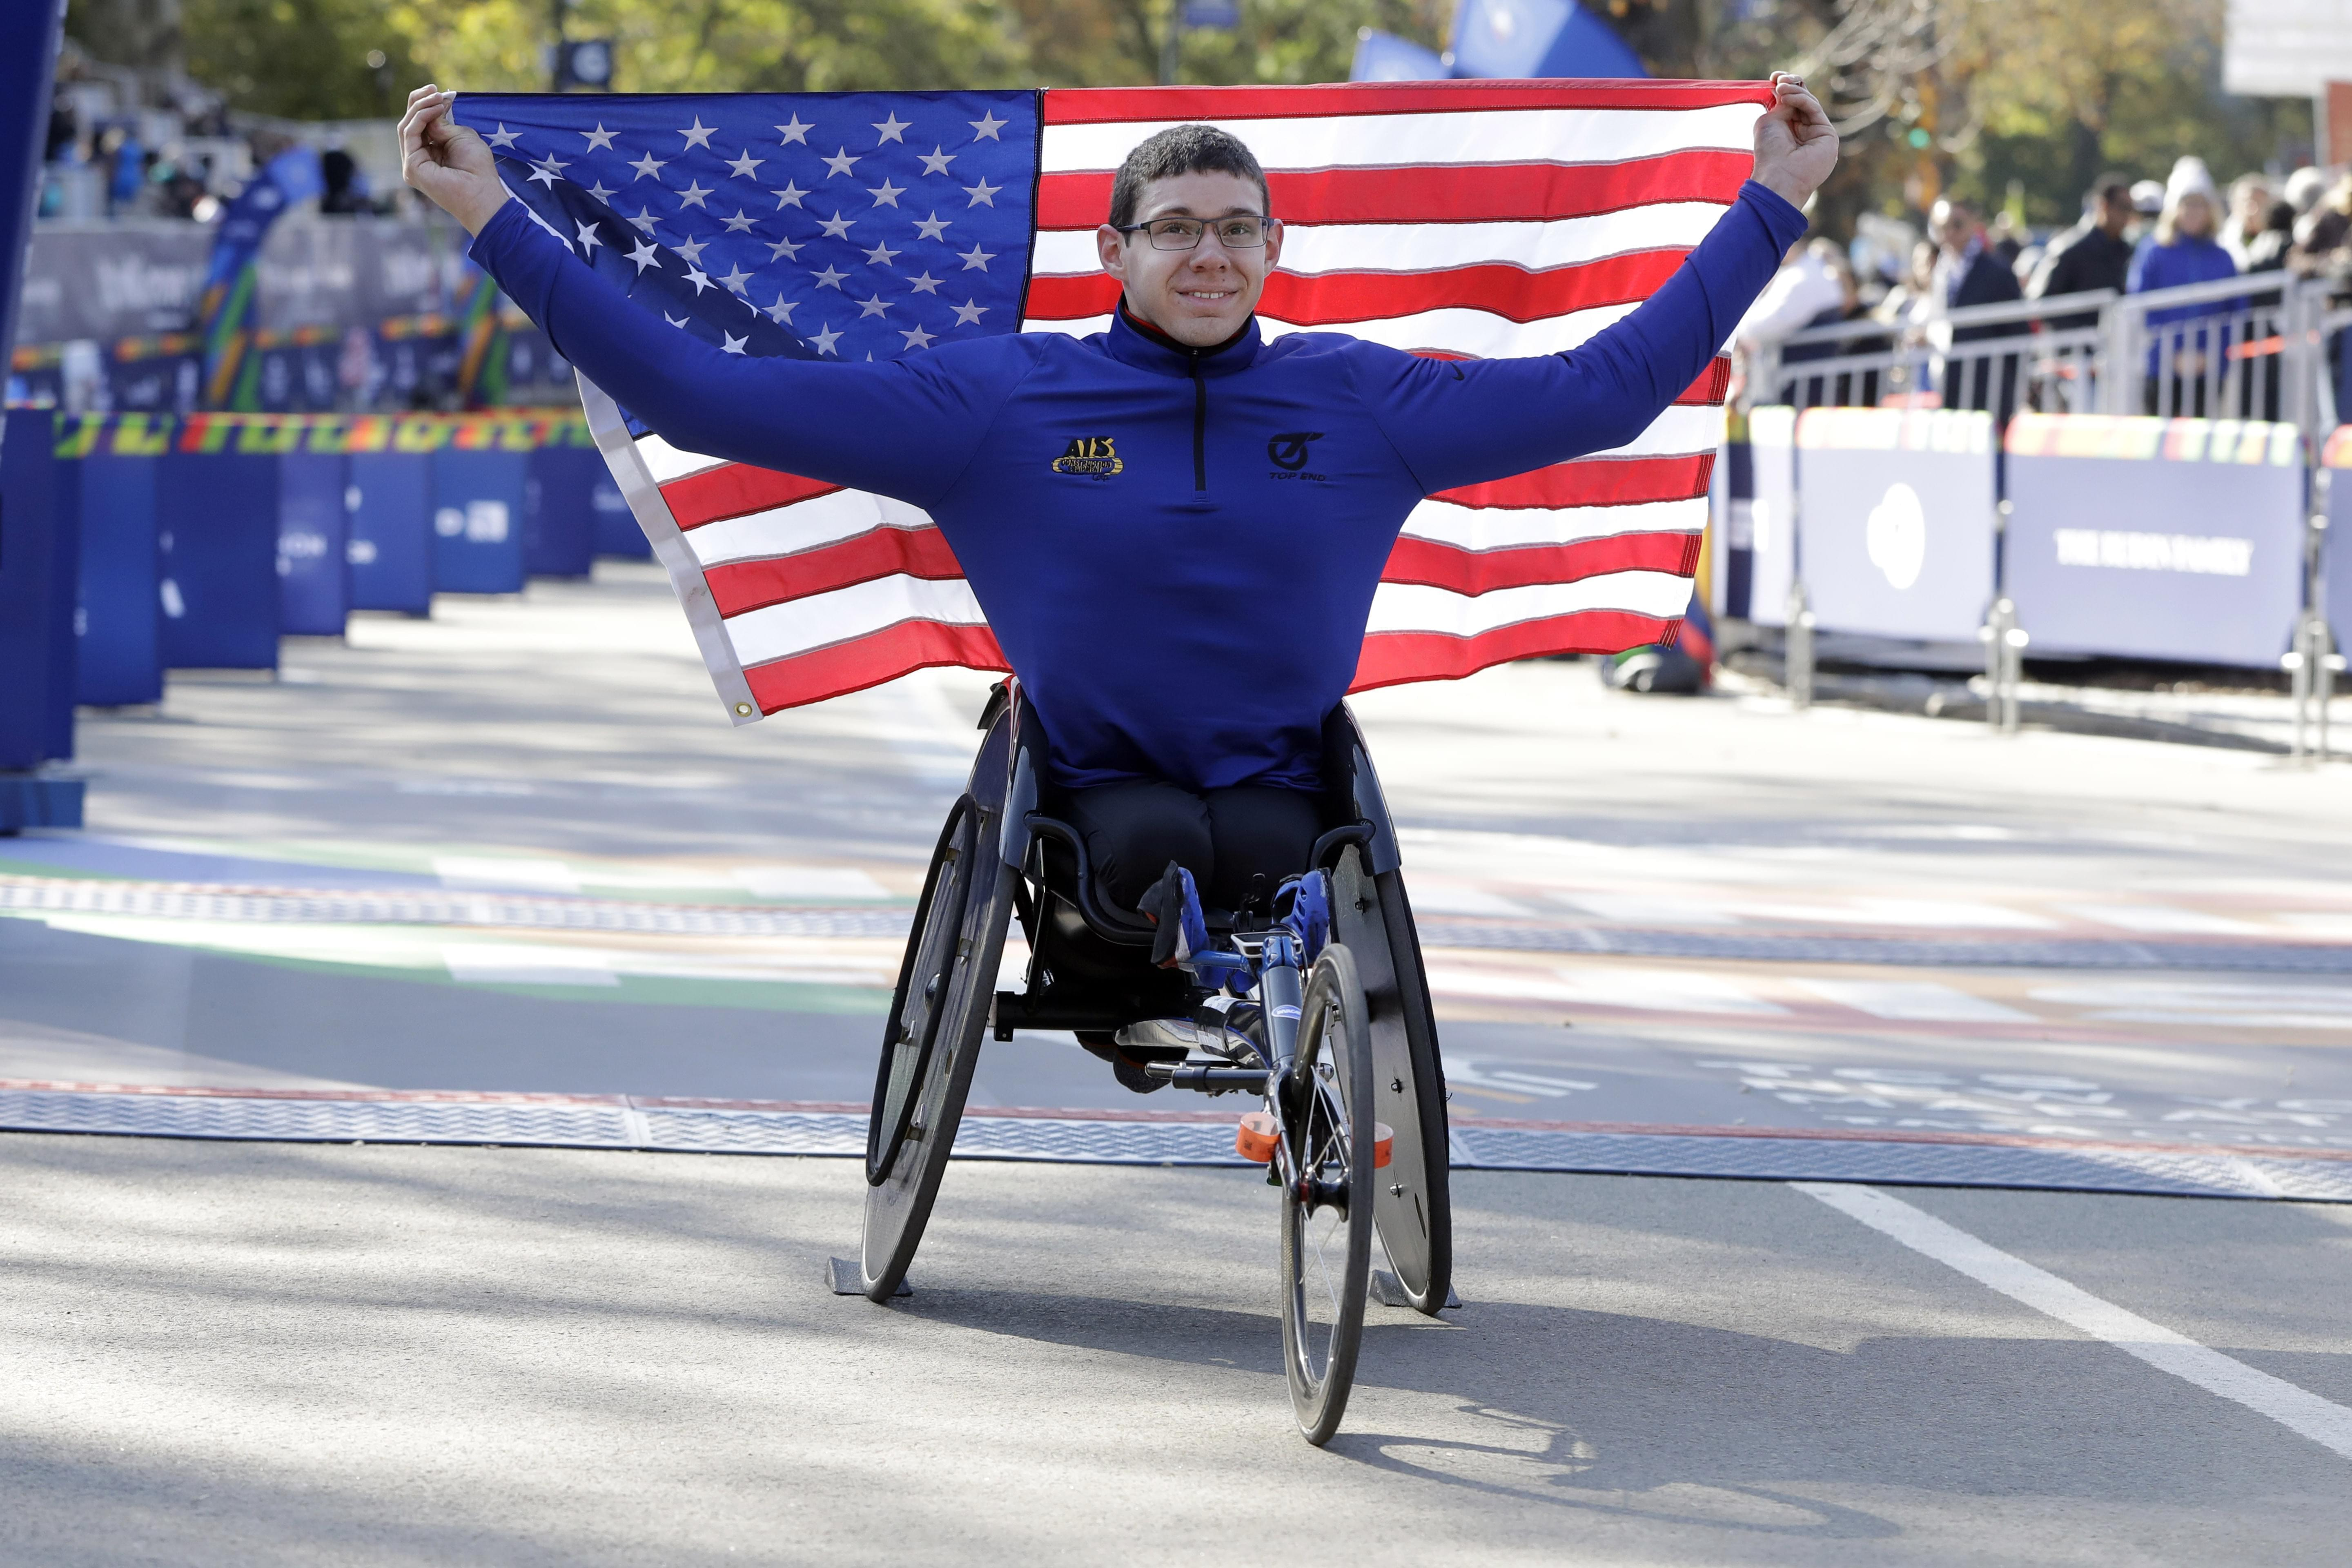 Daniel Romanchuk poses and American flag after winning the men's wheelchair division of the New York City Marathon.